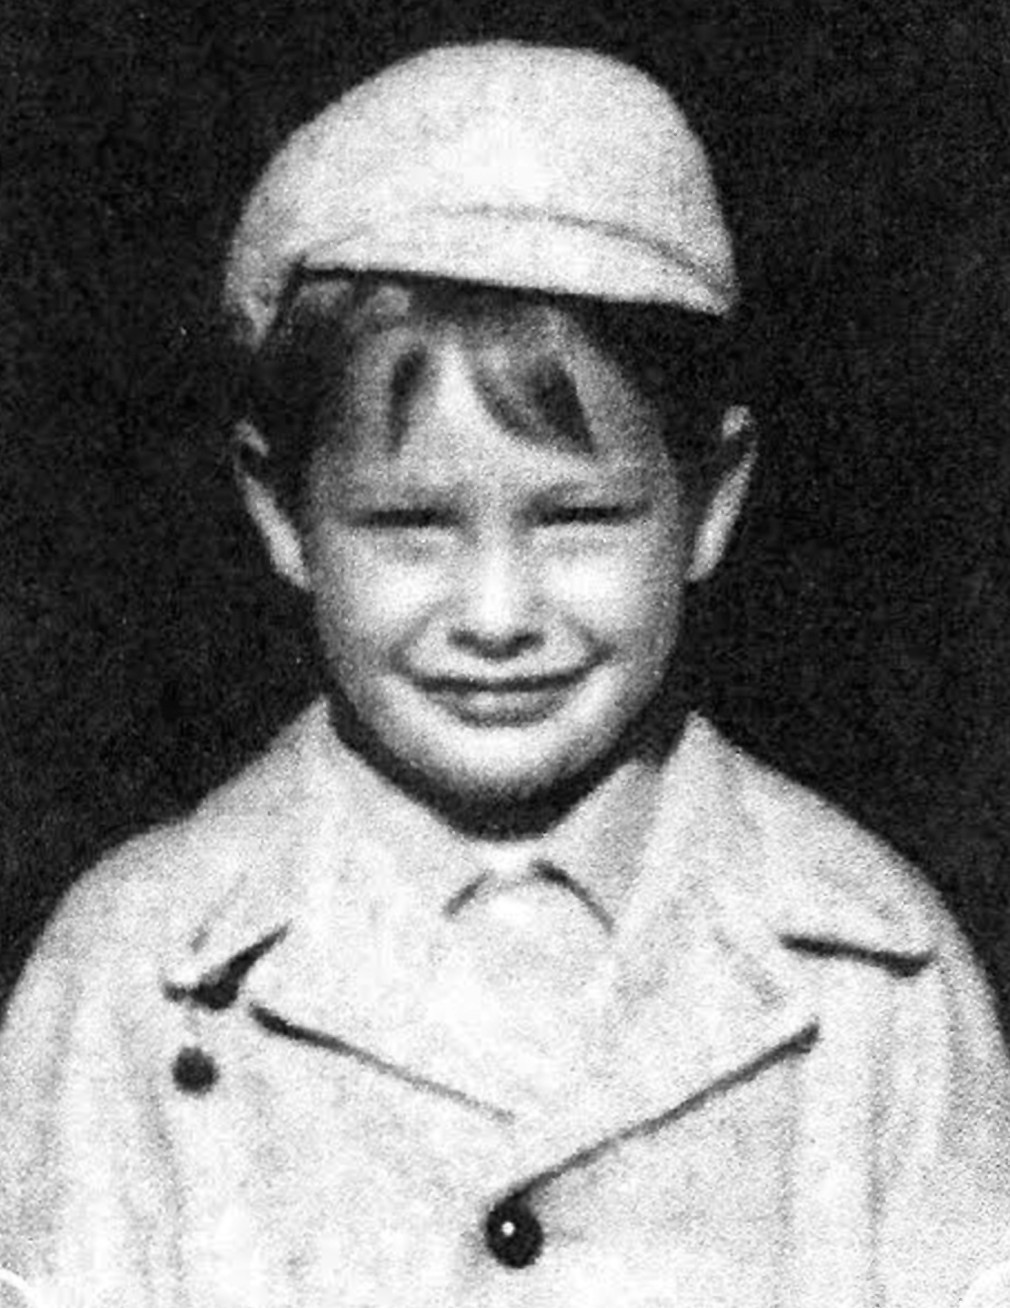 REMEMBER WHEN: This is a photo of Rev. Peter J. Gower during his childhood years in his native Barrington.